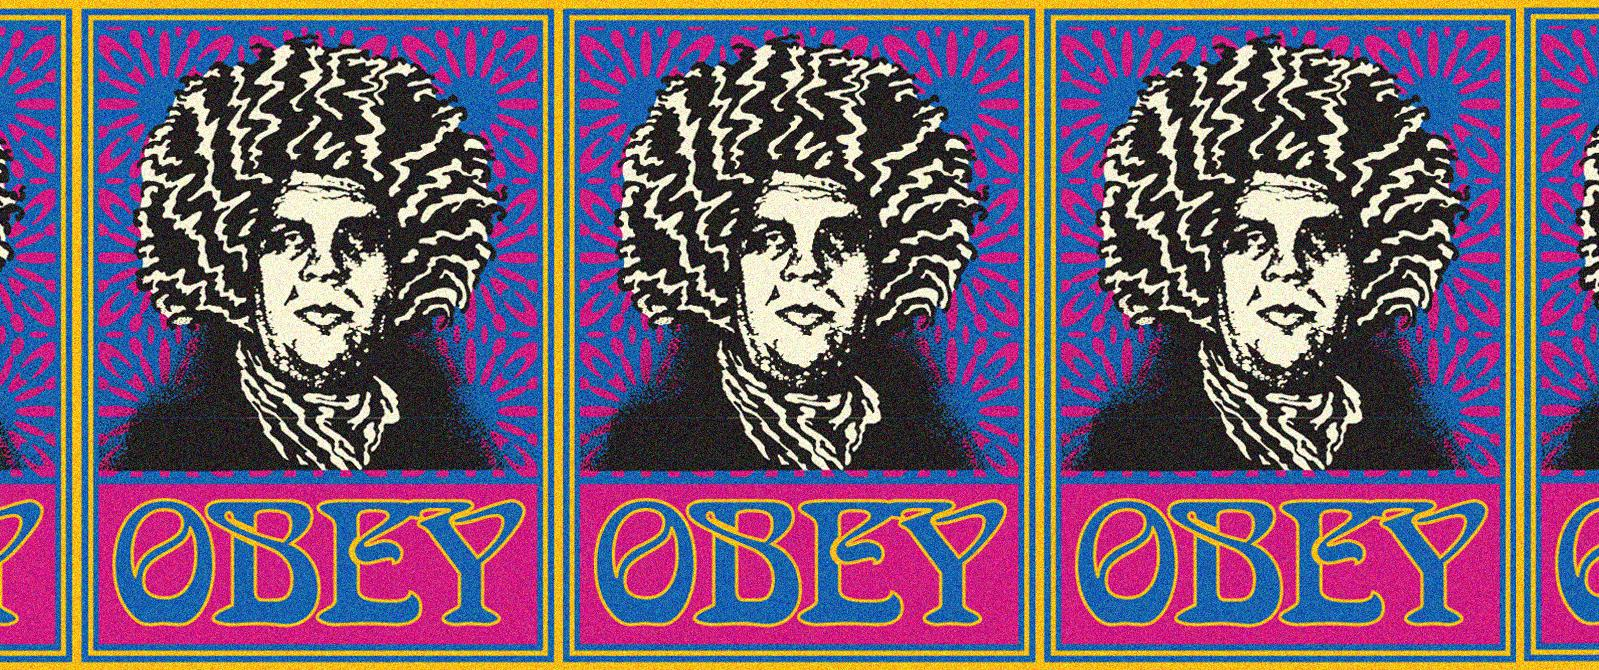 3c0888e9483 OBEY Clothing